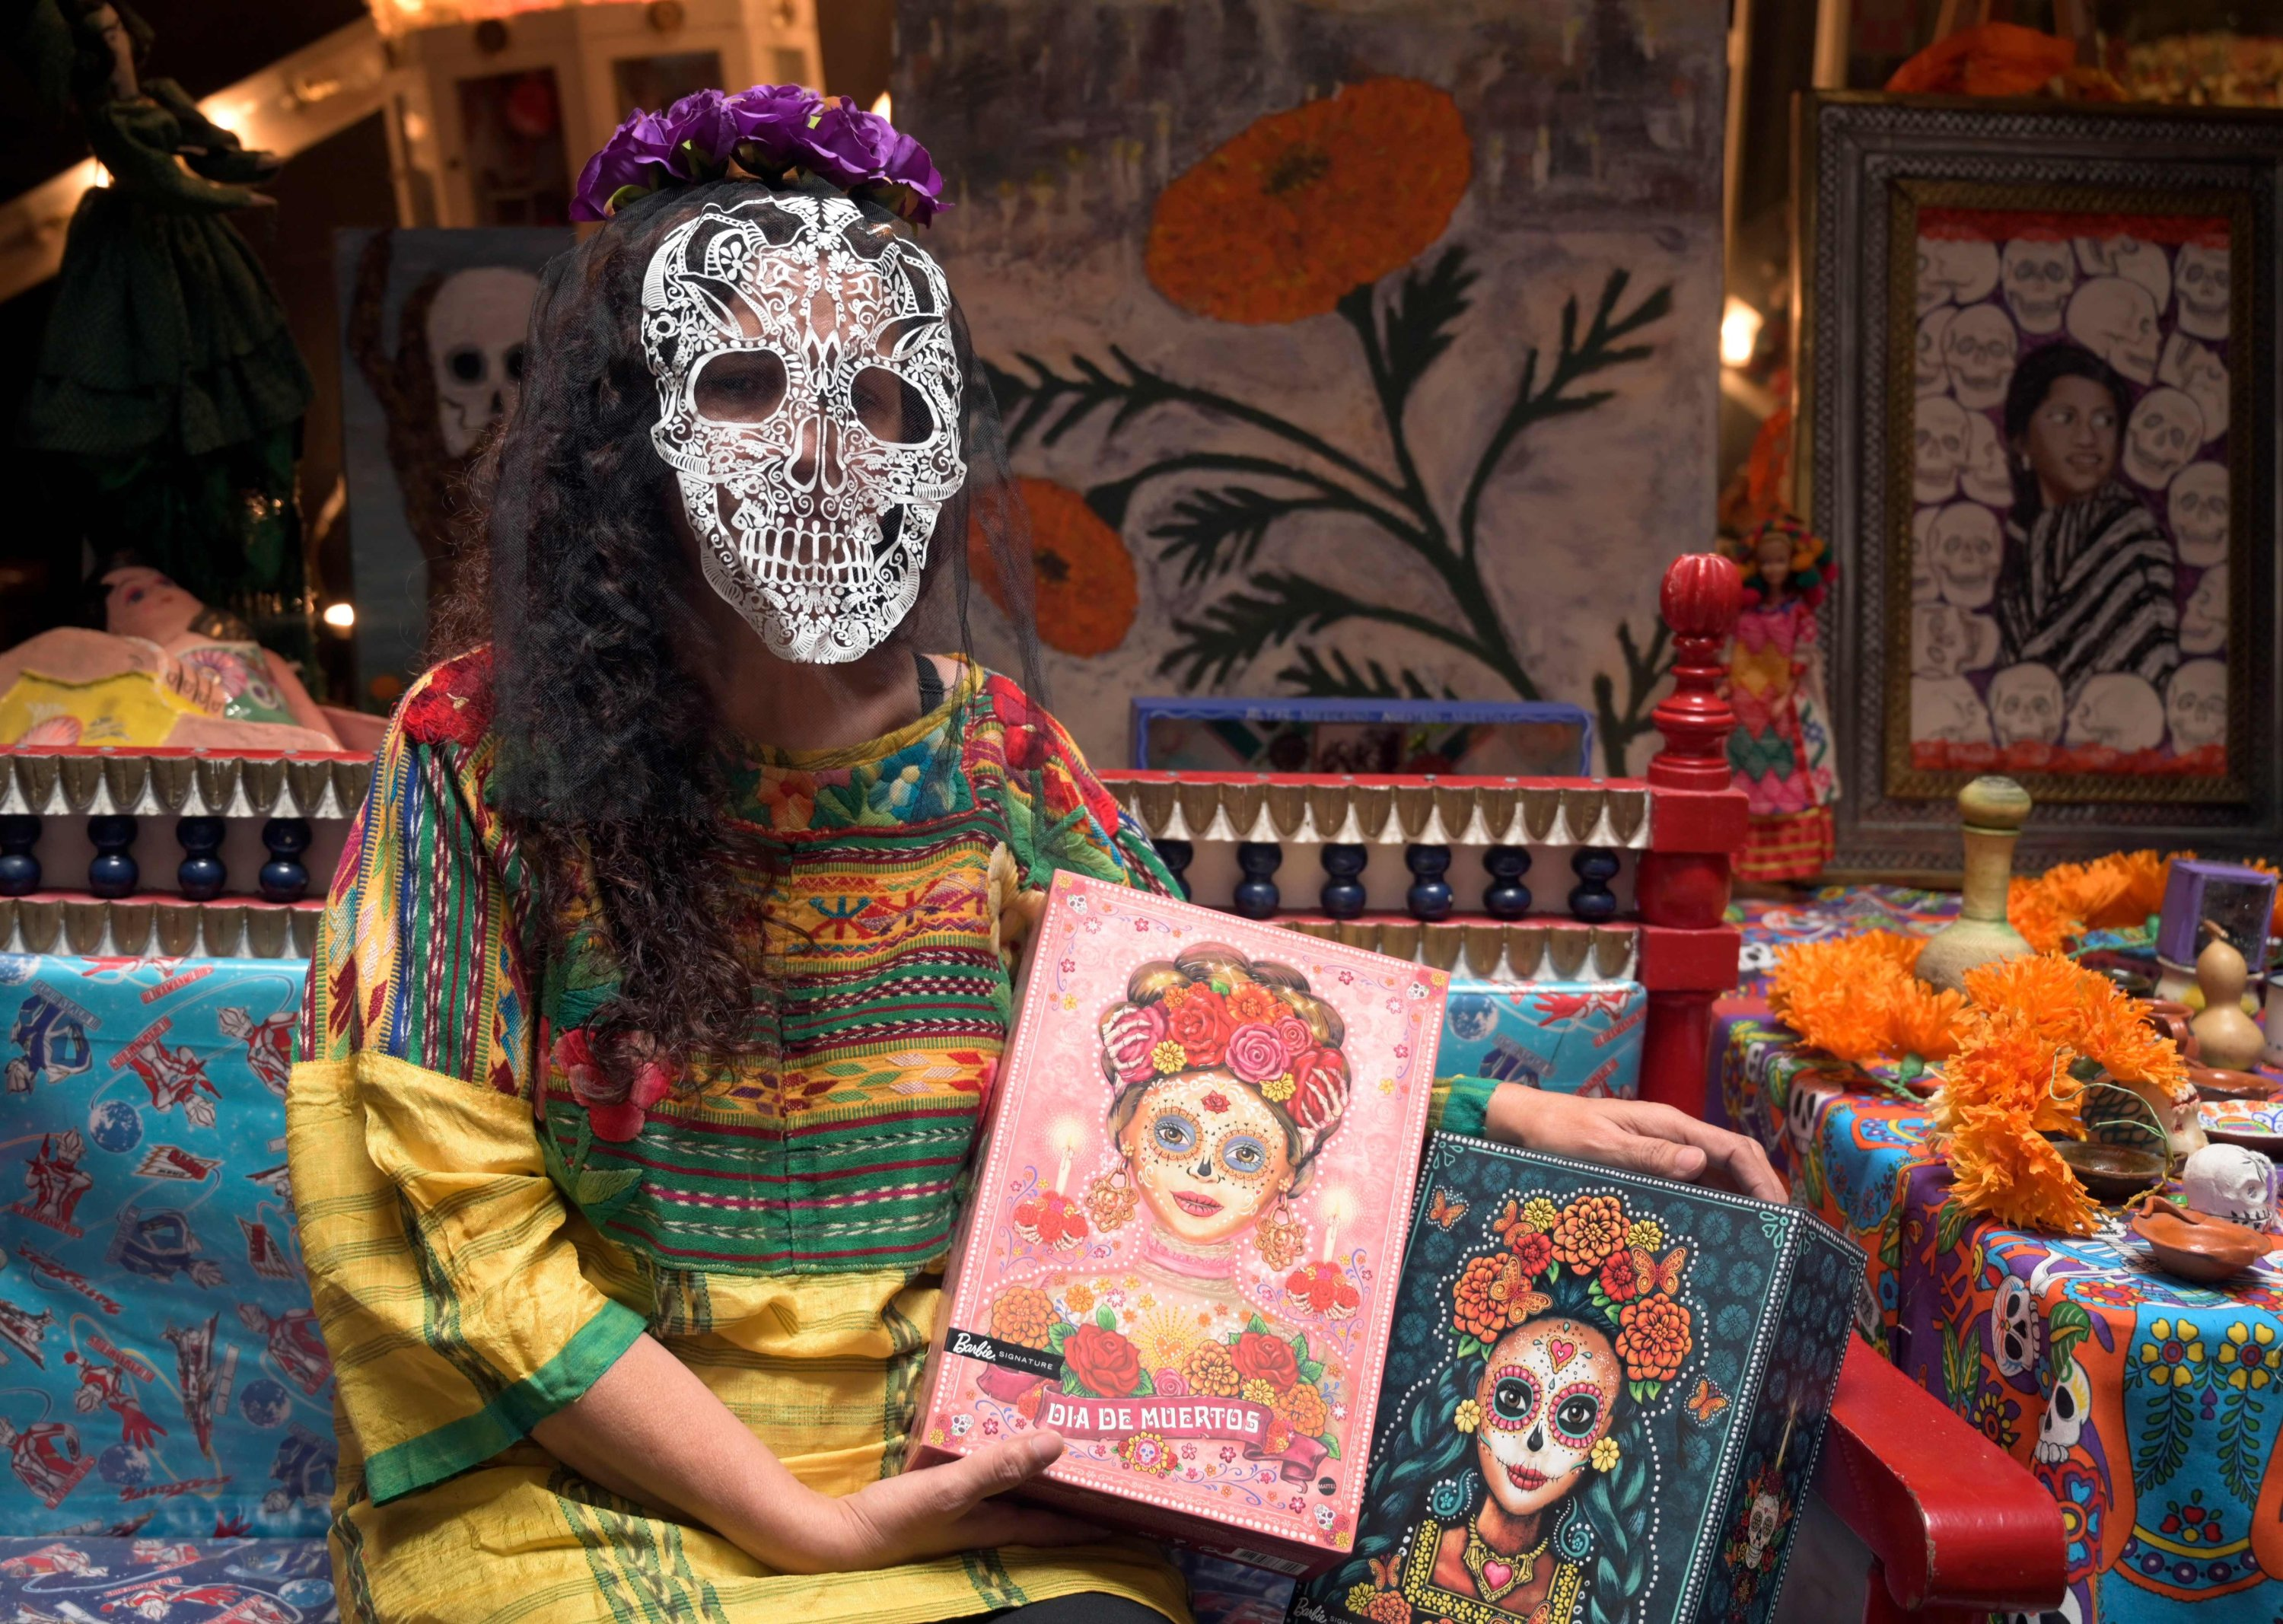 Mexican doll collector Zoila Muntane poses with two 'Catrina' Barbie doll boxes at the Museum of the Old Mexican Toy in Mexico City, Oct. 20, 2020. (AFP Photo)